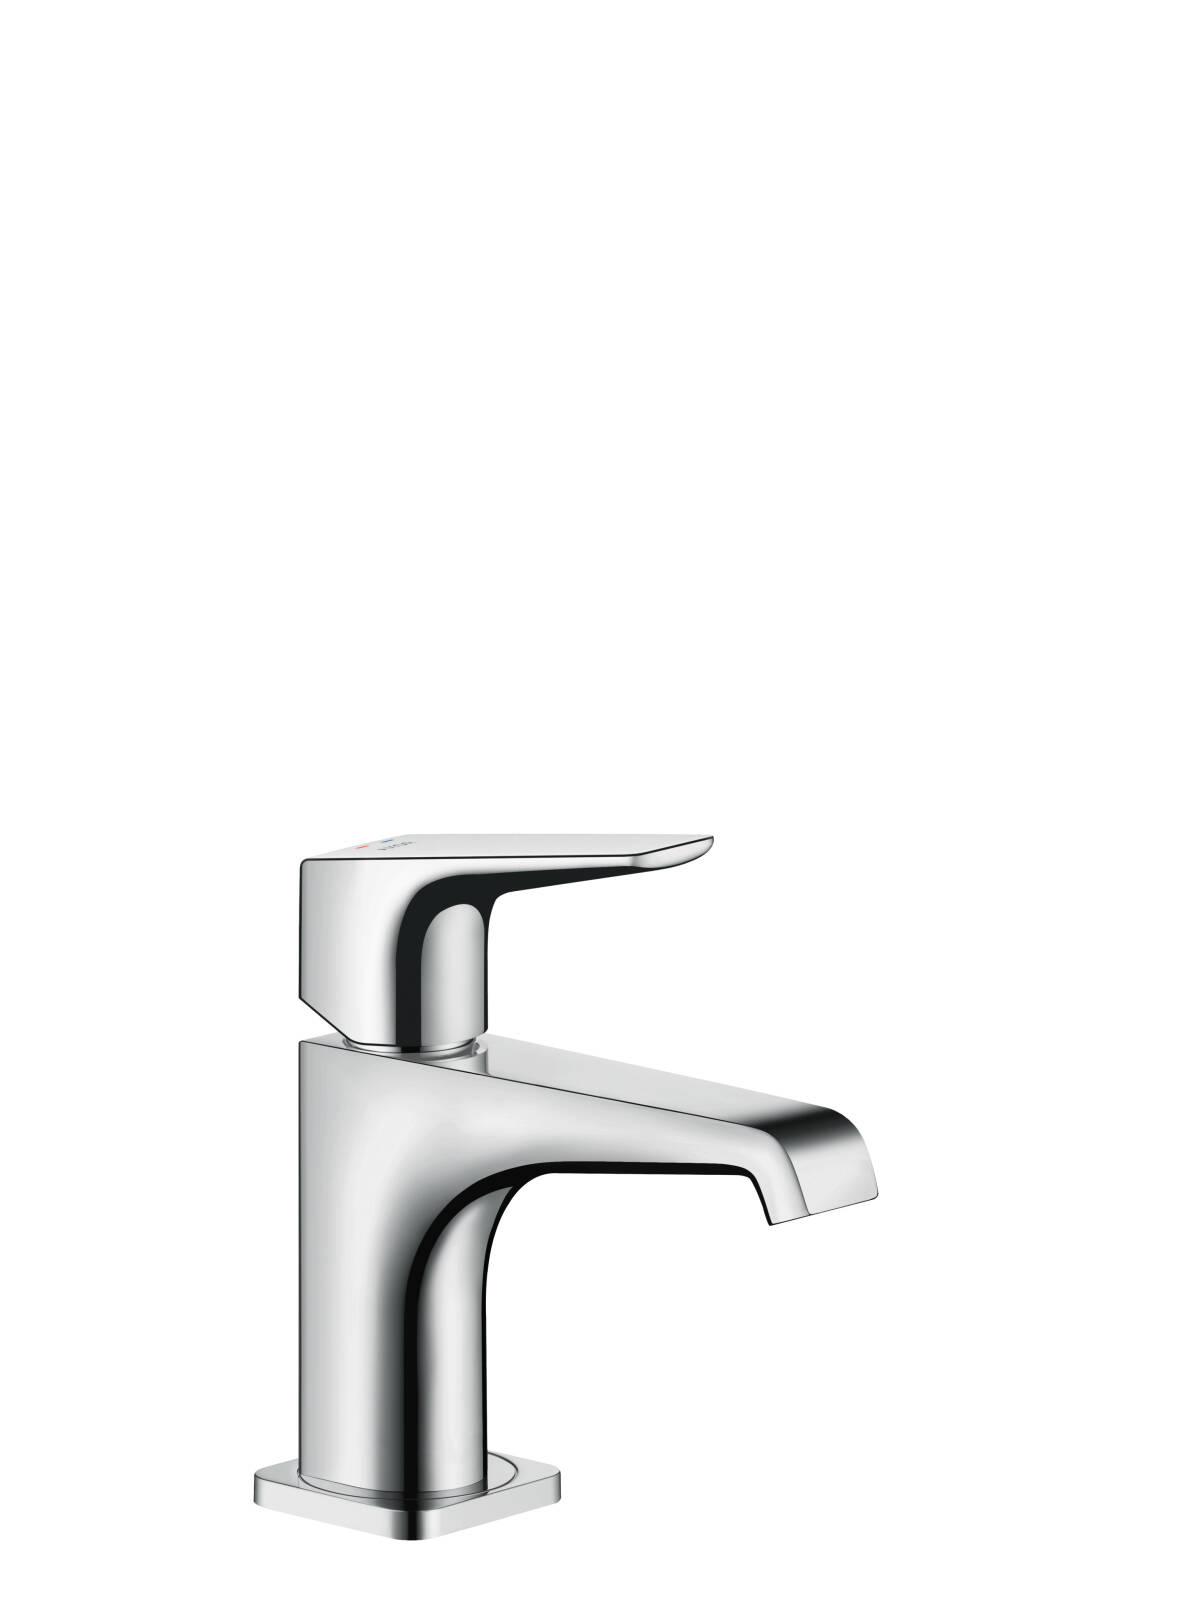 Single lever basin mixer 90 with lever handle for hand washbasins with waste set, Polished Gold Optic, 36112990